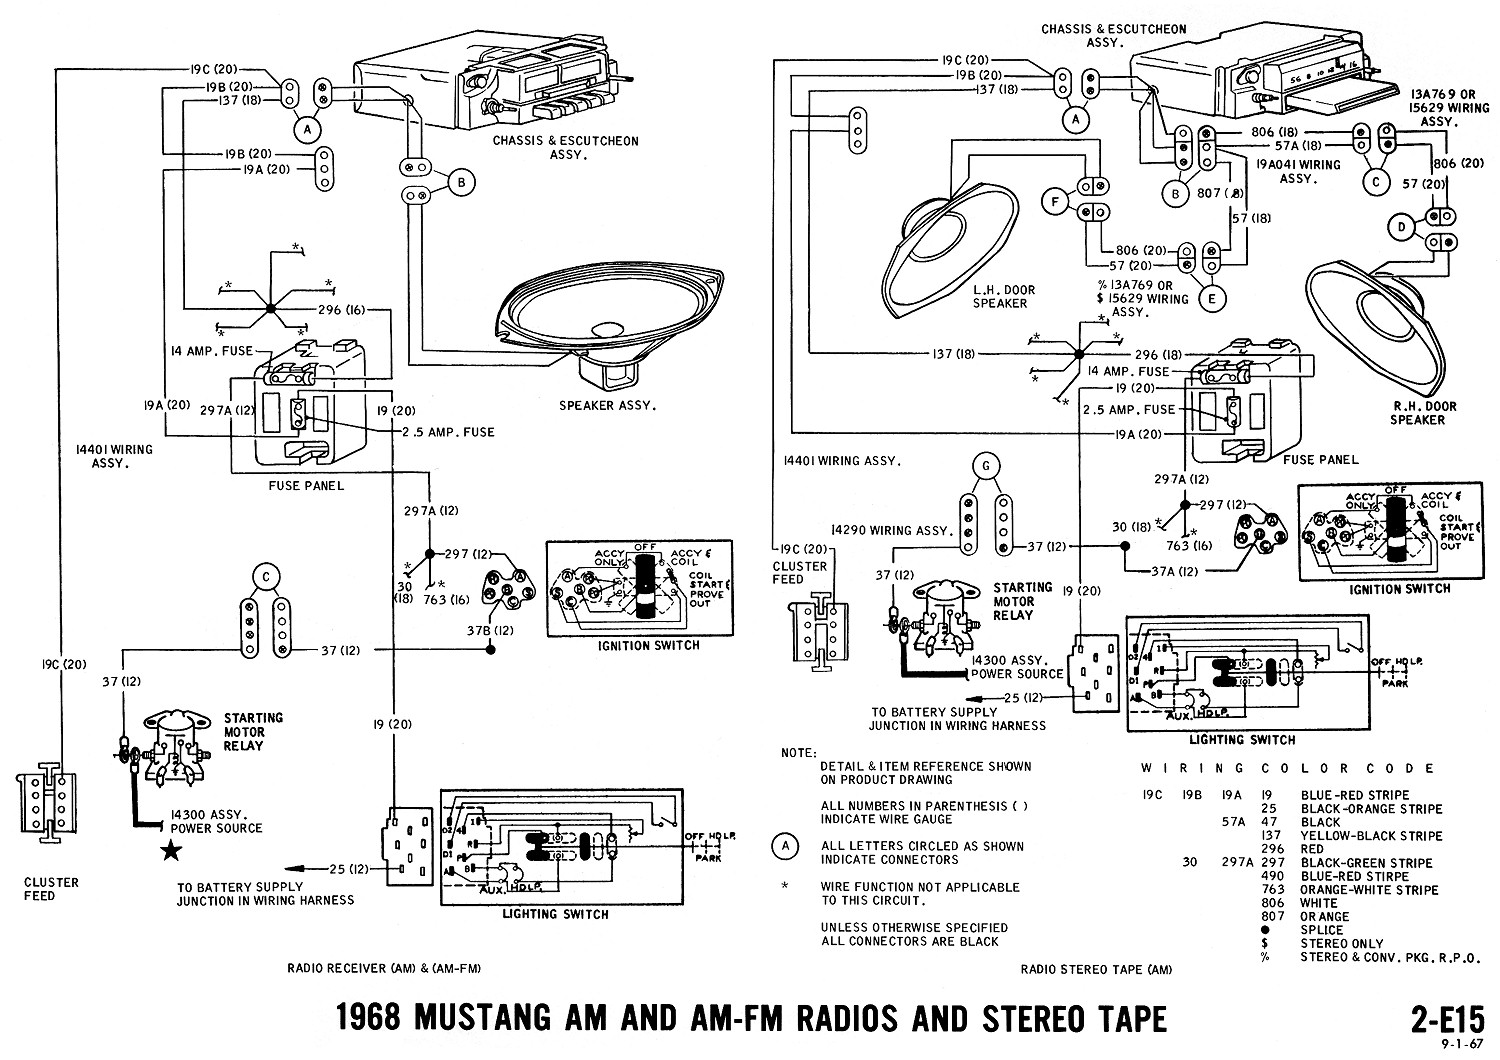 ... E15 2000 mustang v6 radio wiring diagram efcaviation com 2004 mustang  mach stereo wiring diagram at